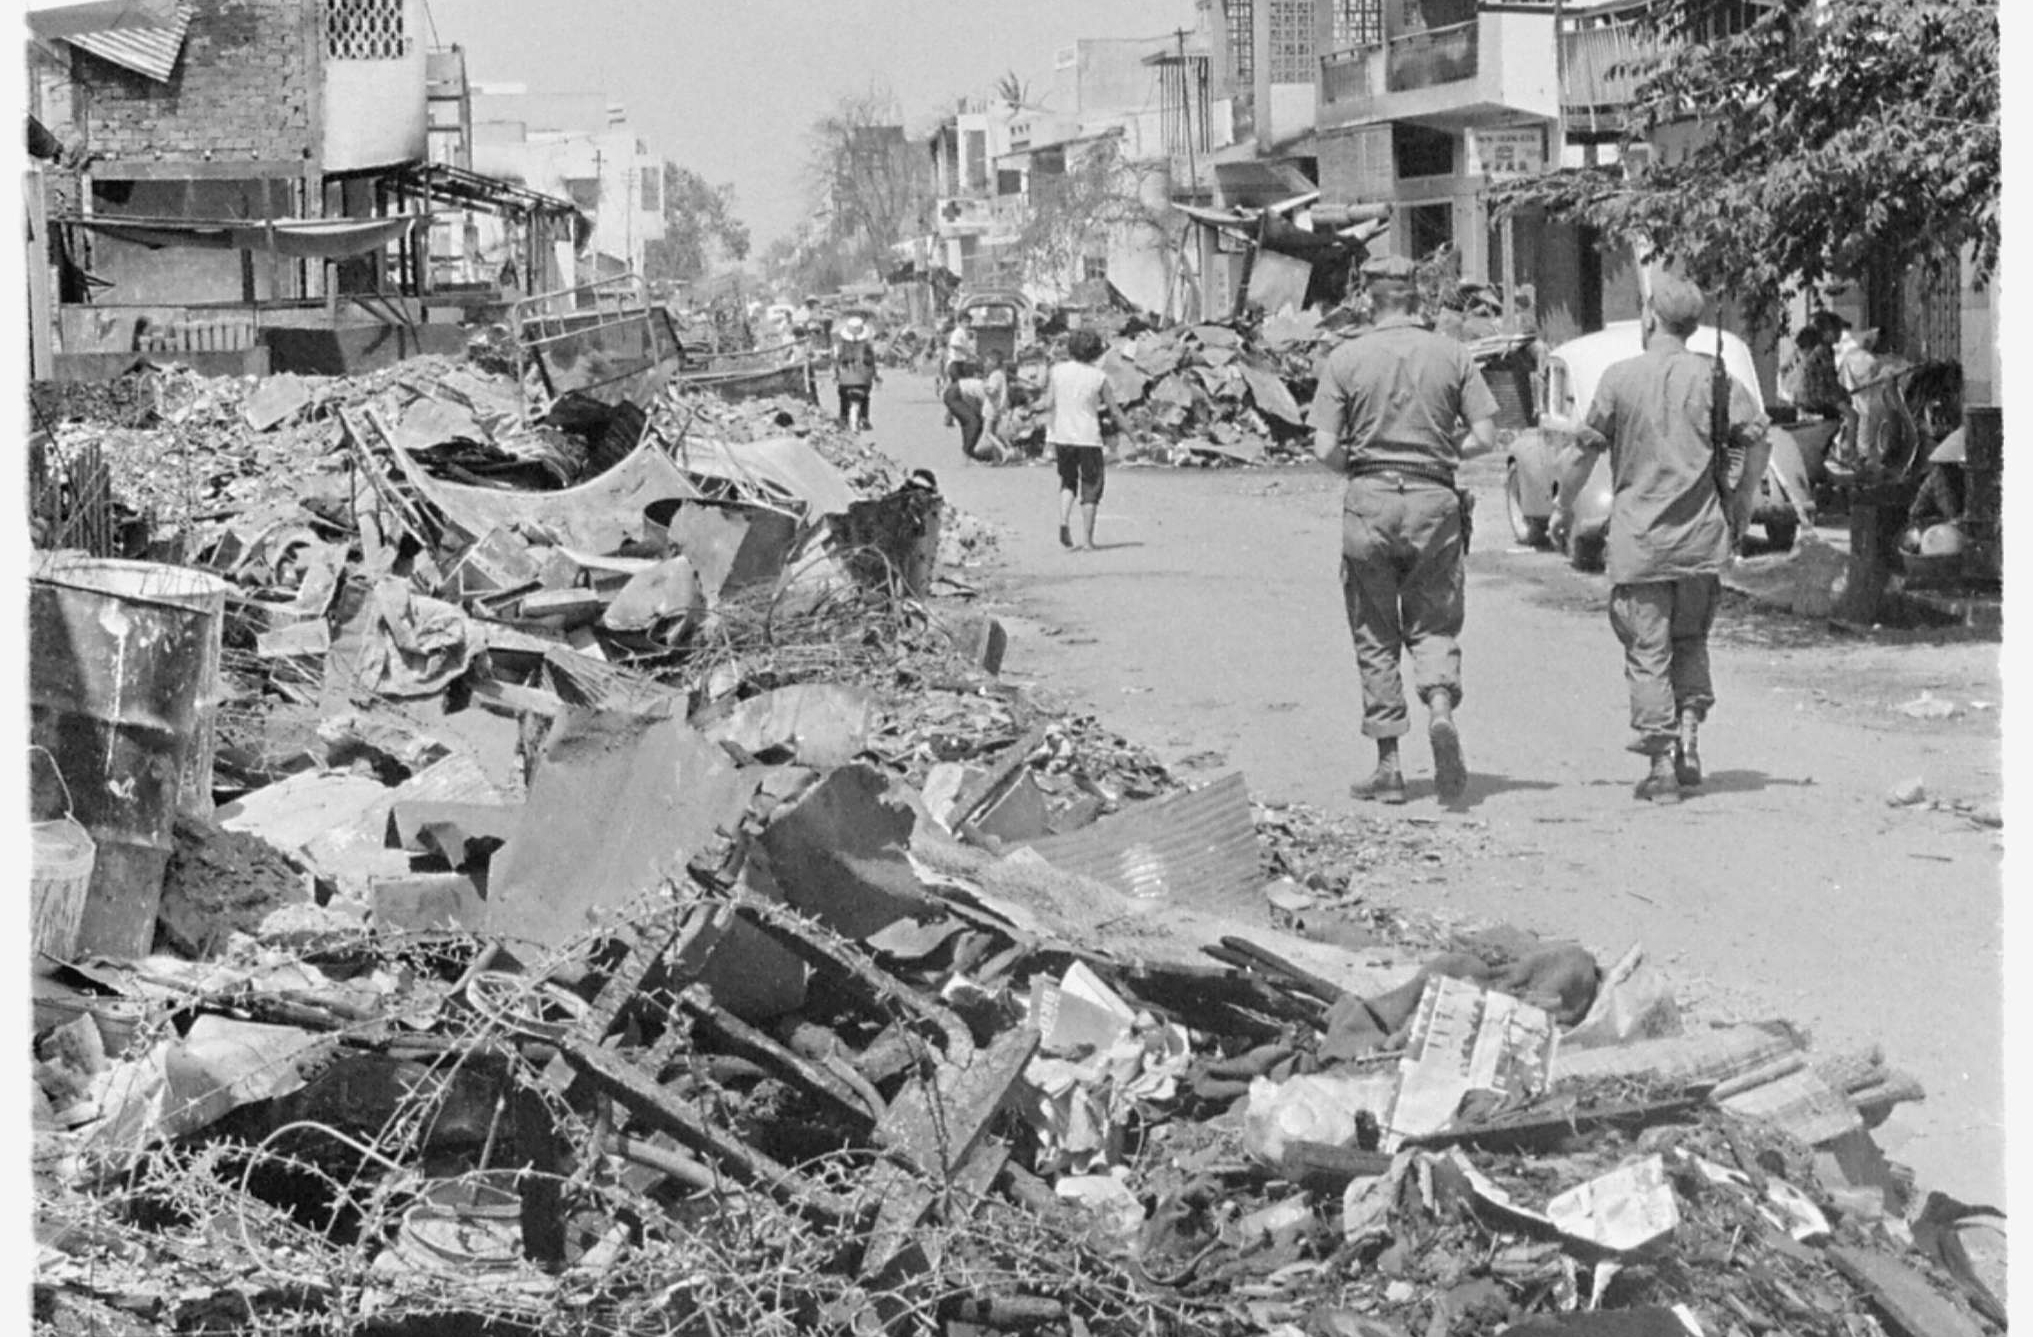 Suburb of Saigon That was Burned by the South Vietnamese Army